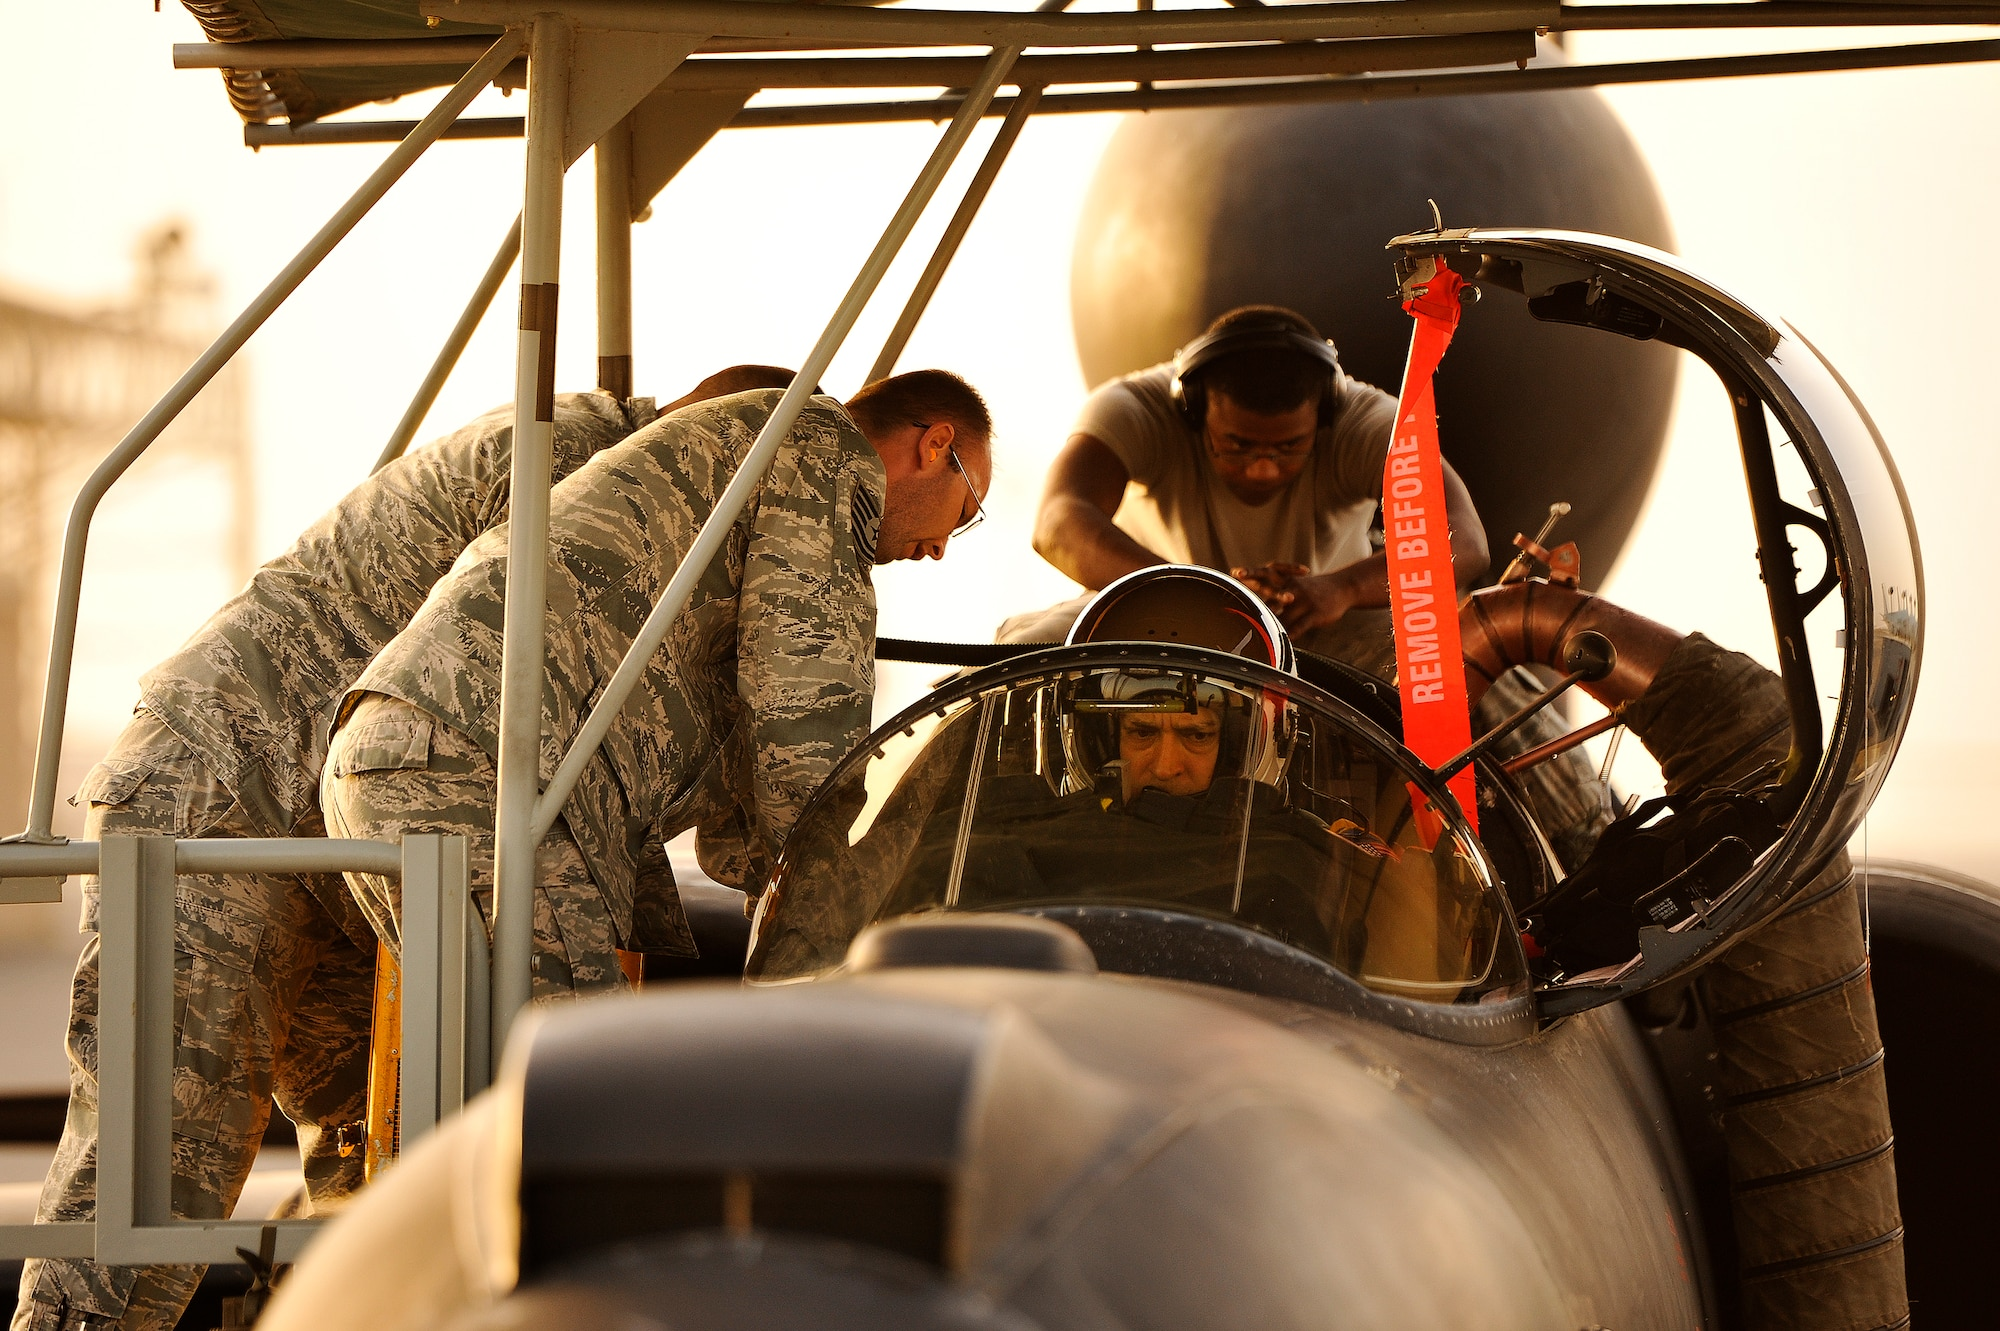 Airmen with the 99th Expeditionary Reconnaissance Squadron integrate Lt. Col. Jeff Klosky into his U-2 Dragon Lady April 20, 2014, at a flightline in Southwest Asia. U-2 pilots need additional help boarding the their aircraft because of their full pressure suits. (U.S. Air Force photo/Tech. Sgt. Russ Scalf)